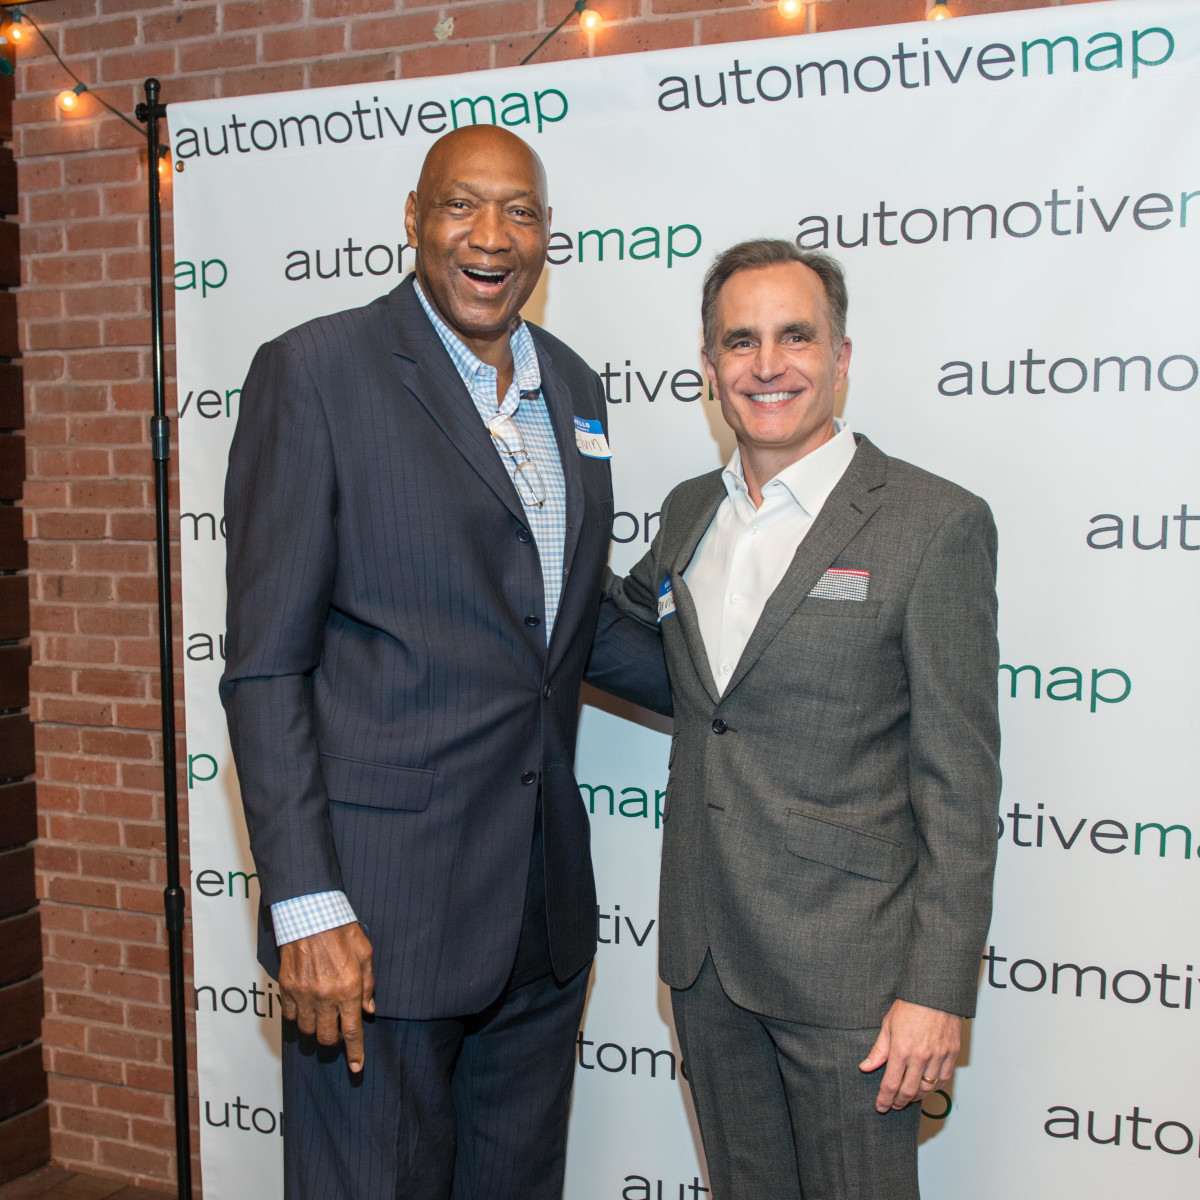 Automotive Map launch party 2019 Elvin Hayes and David Gow